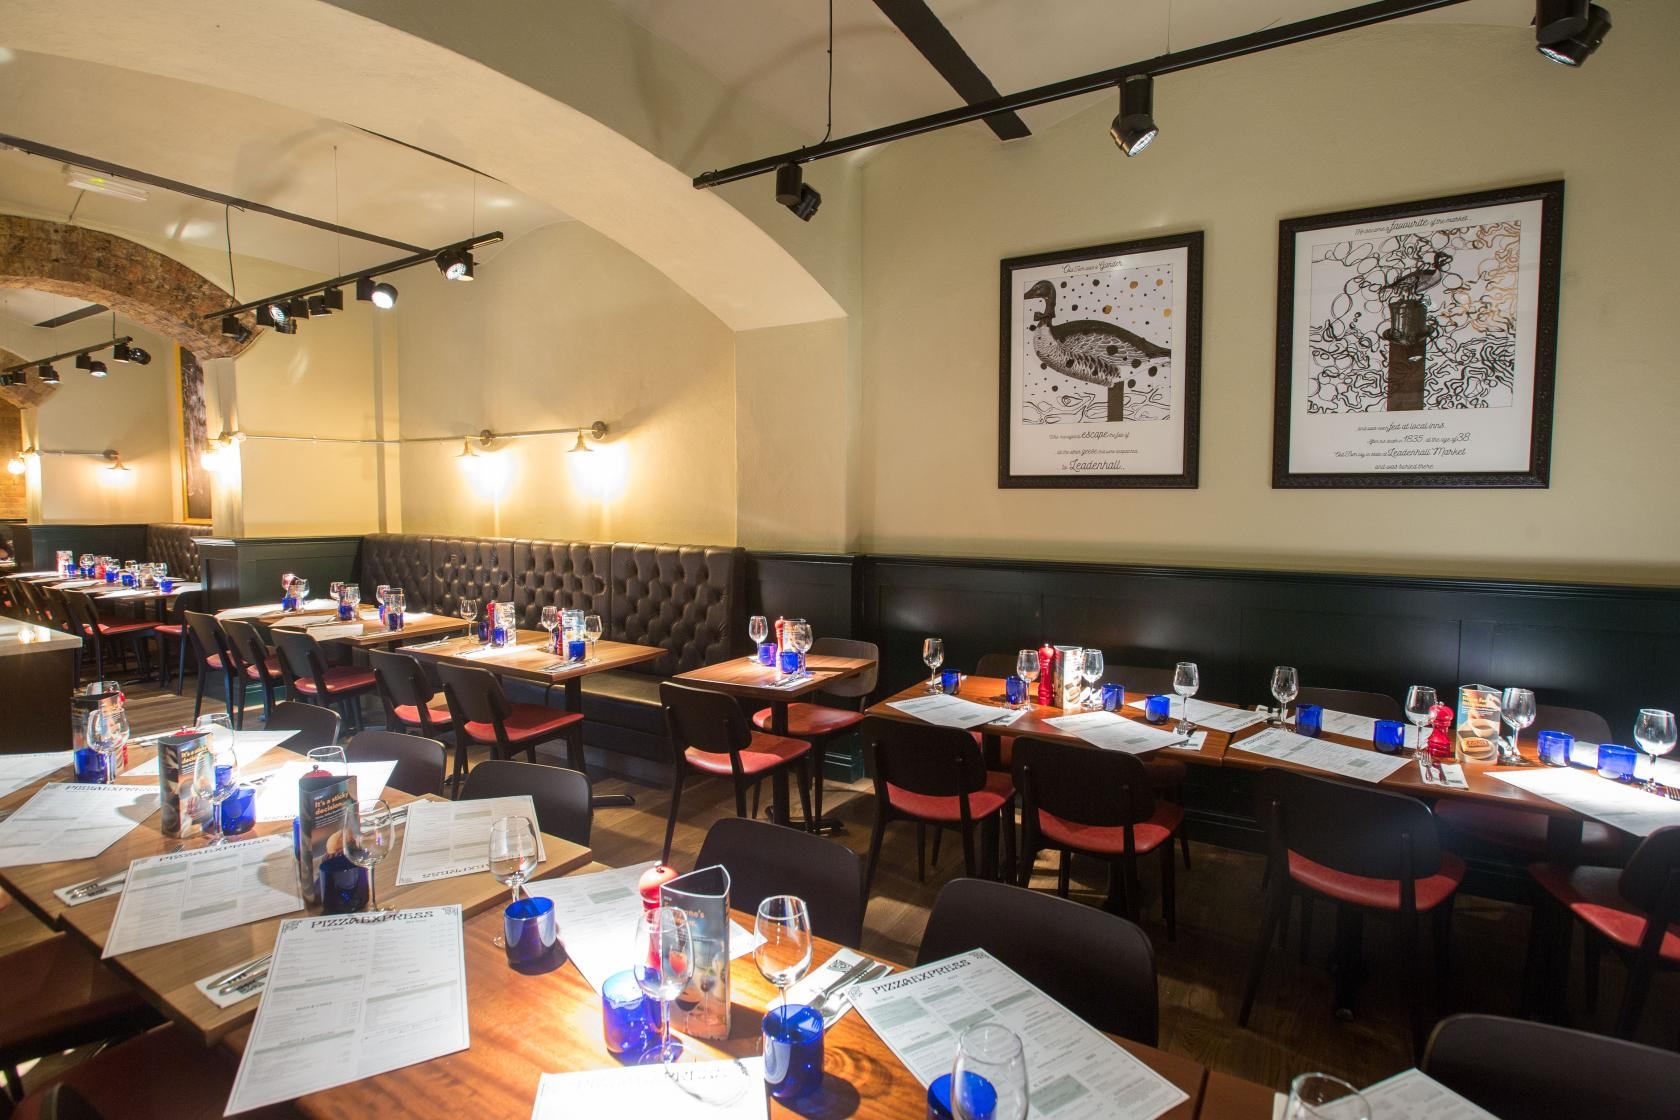 Book basement dining room at pizzaexpress leadenhall for Best private dining rooms central london